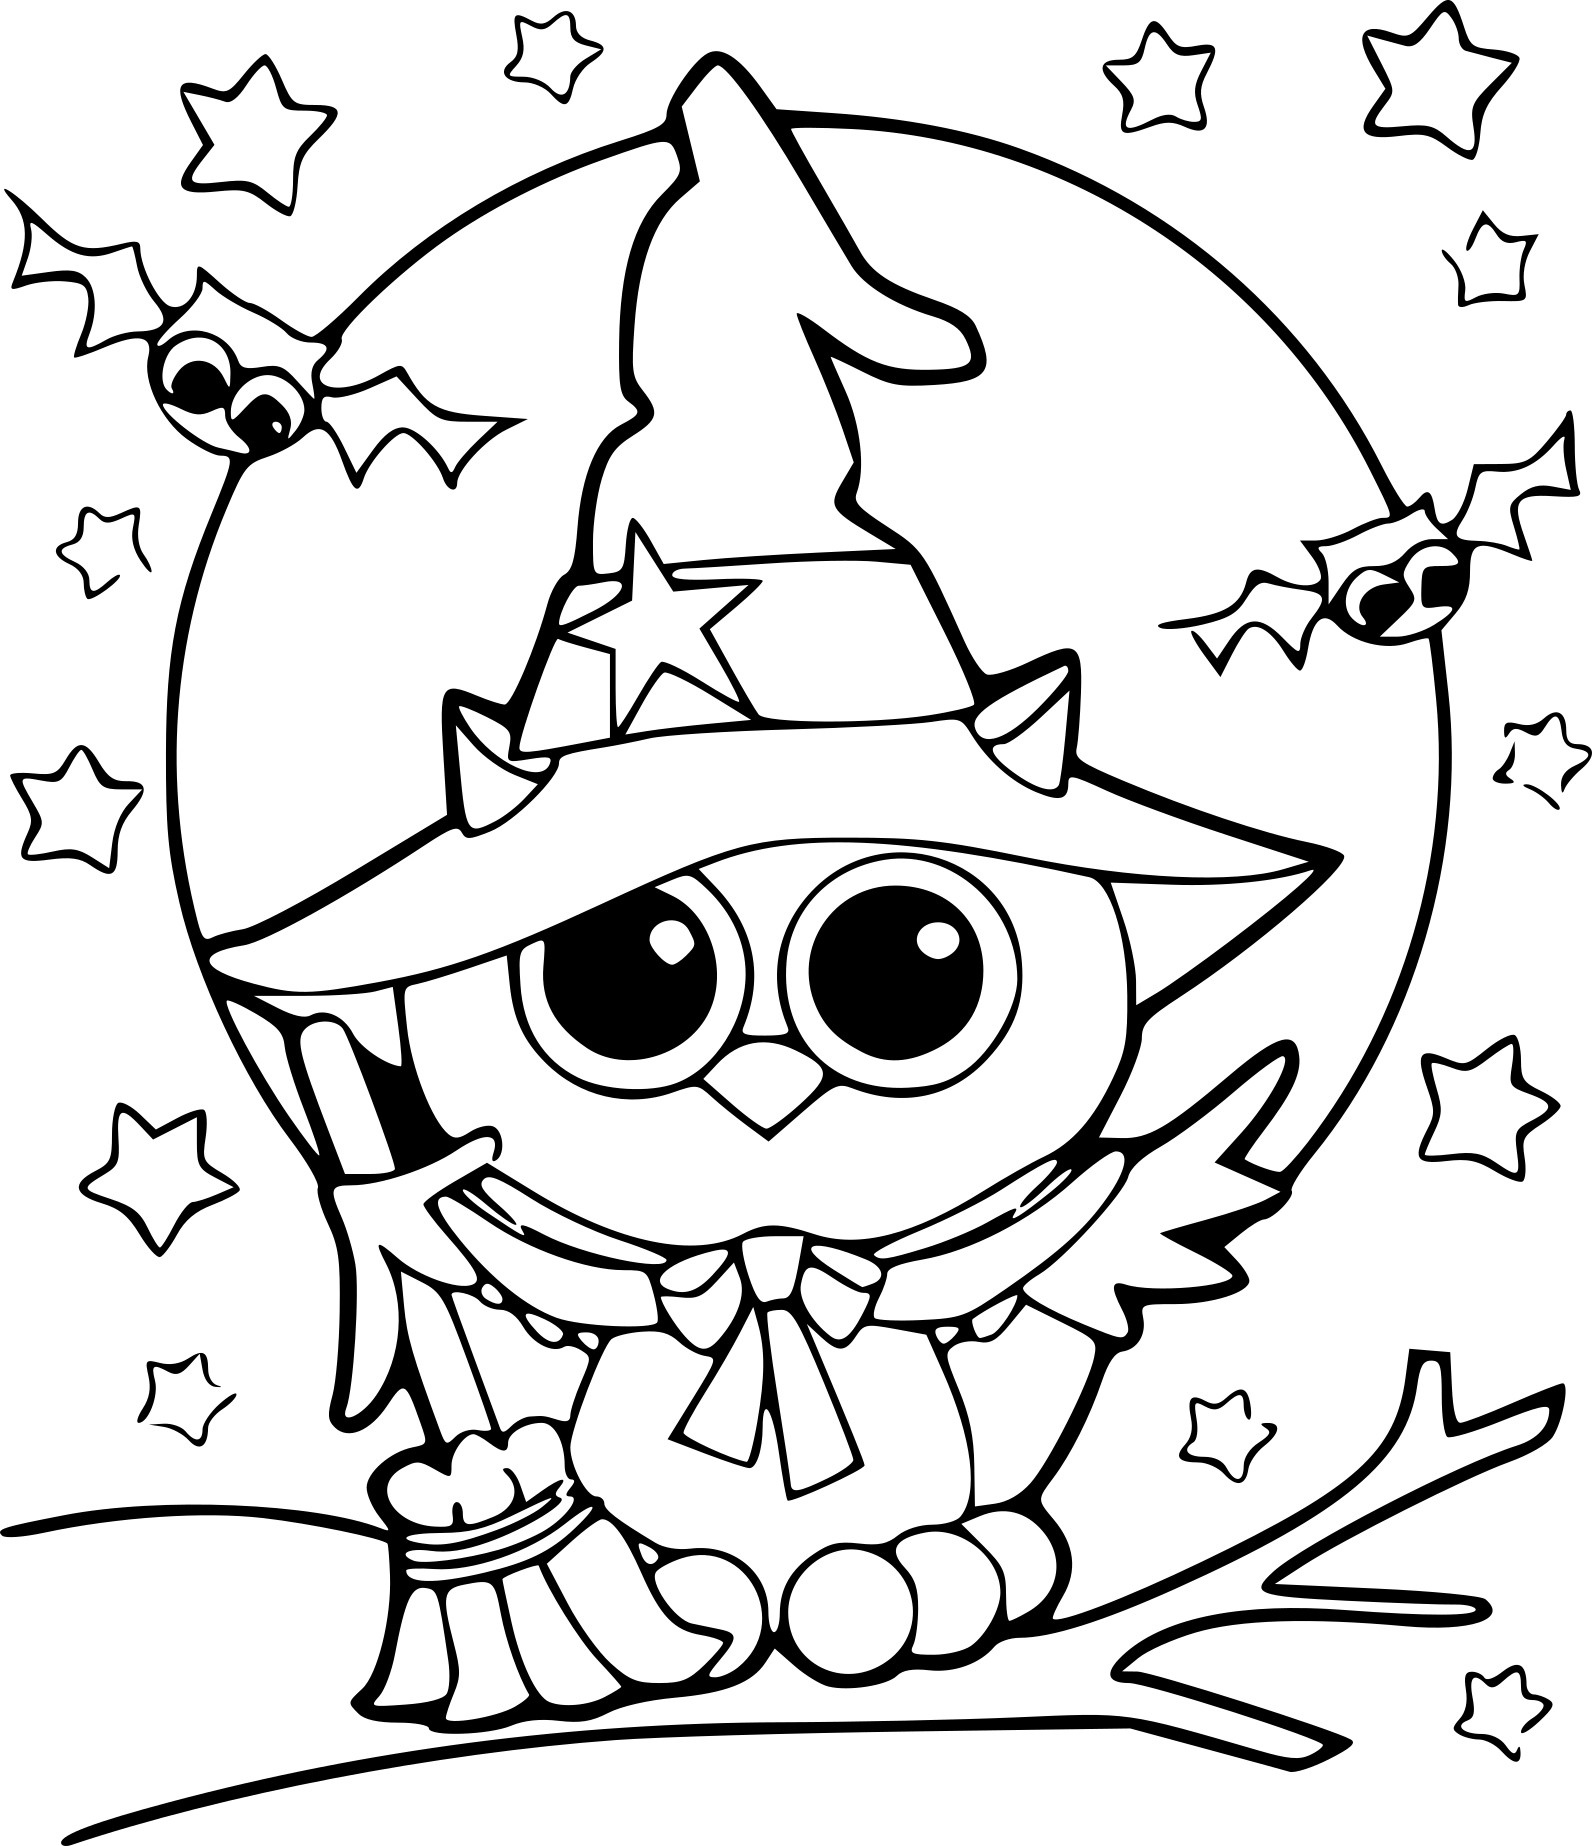 Agréable Coloriage Halloween 43 Dans Coloriage Pages for Coloriage Halloween